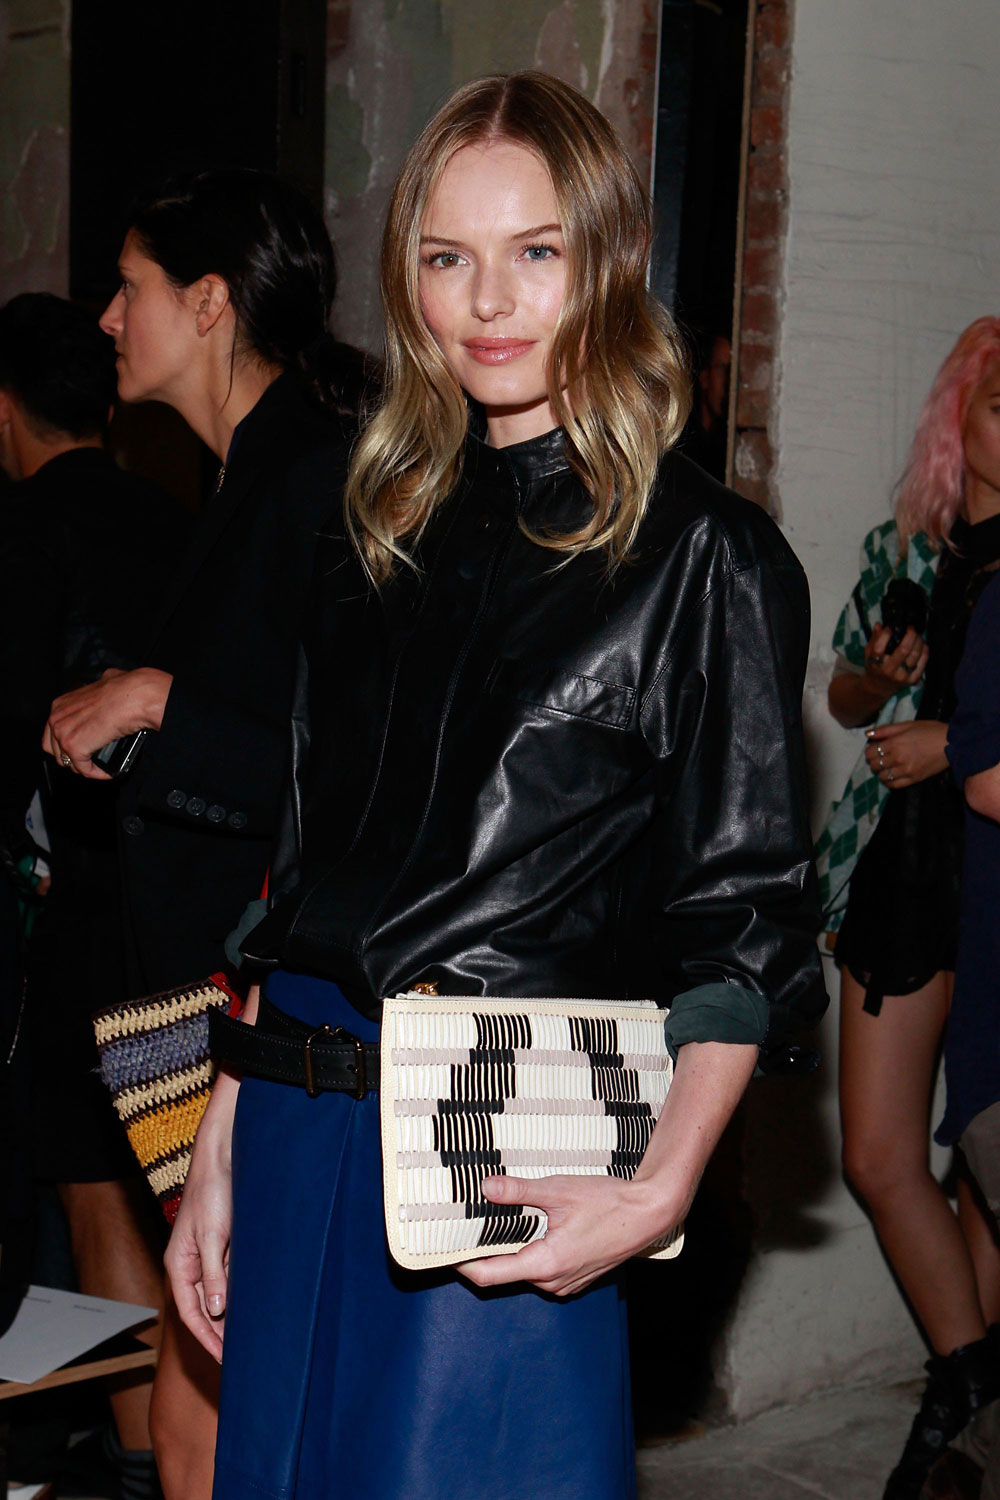 Kate Bosworth at Proenza Schouler Spring 2013 fashion show